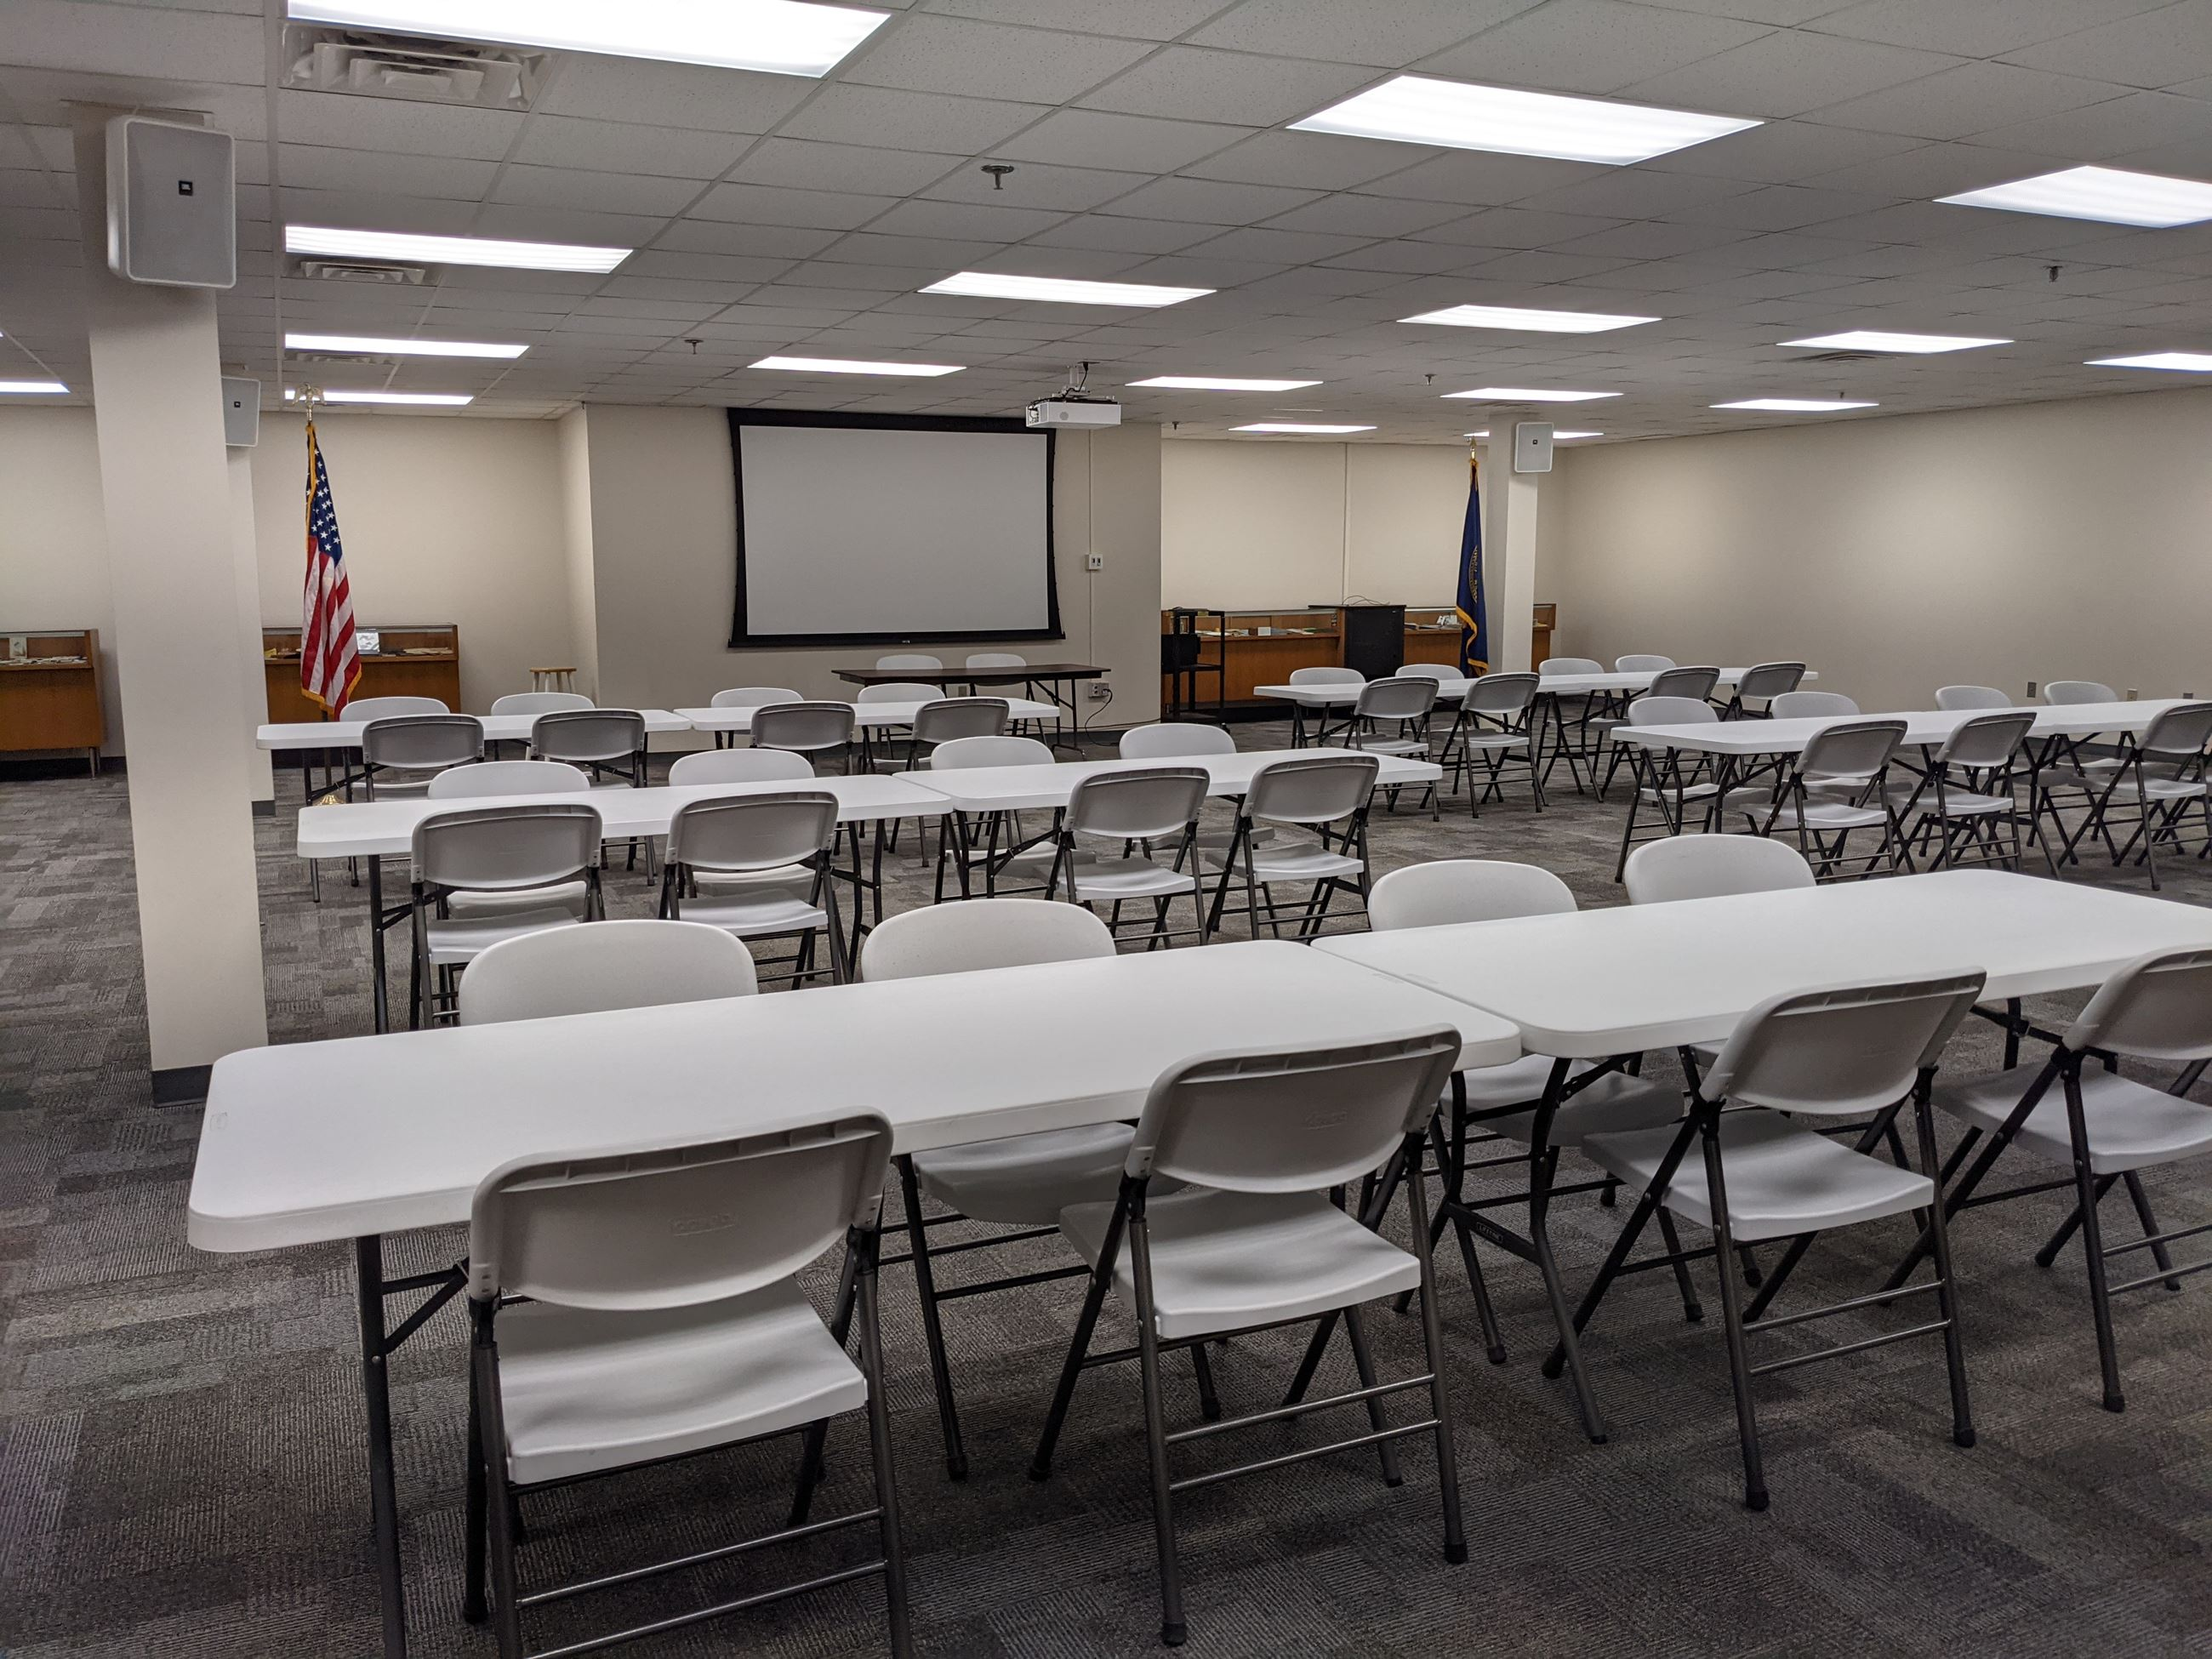 Photo showing the Large Meeting Room with tables, chairs, and projection system.